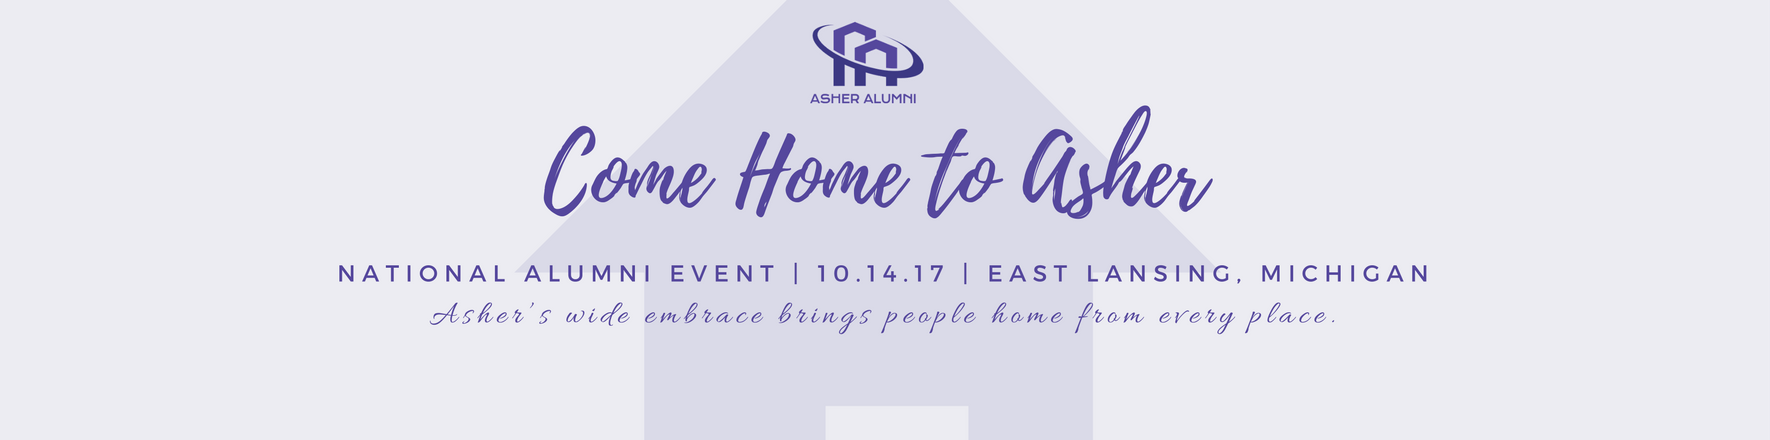 Come-Home-to-Asher_071317